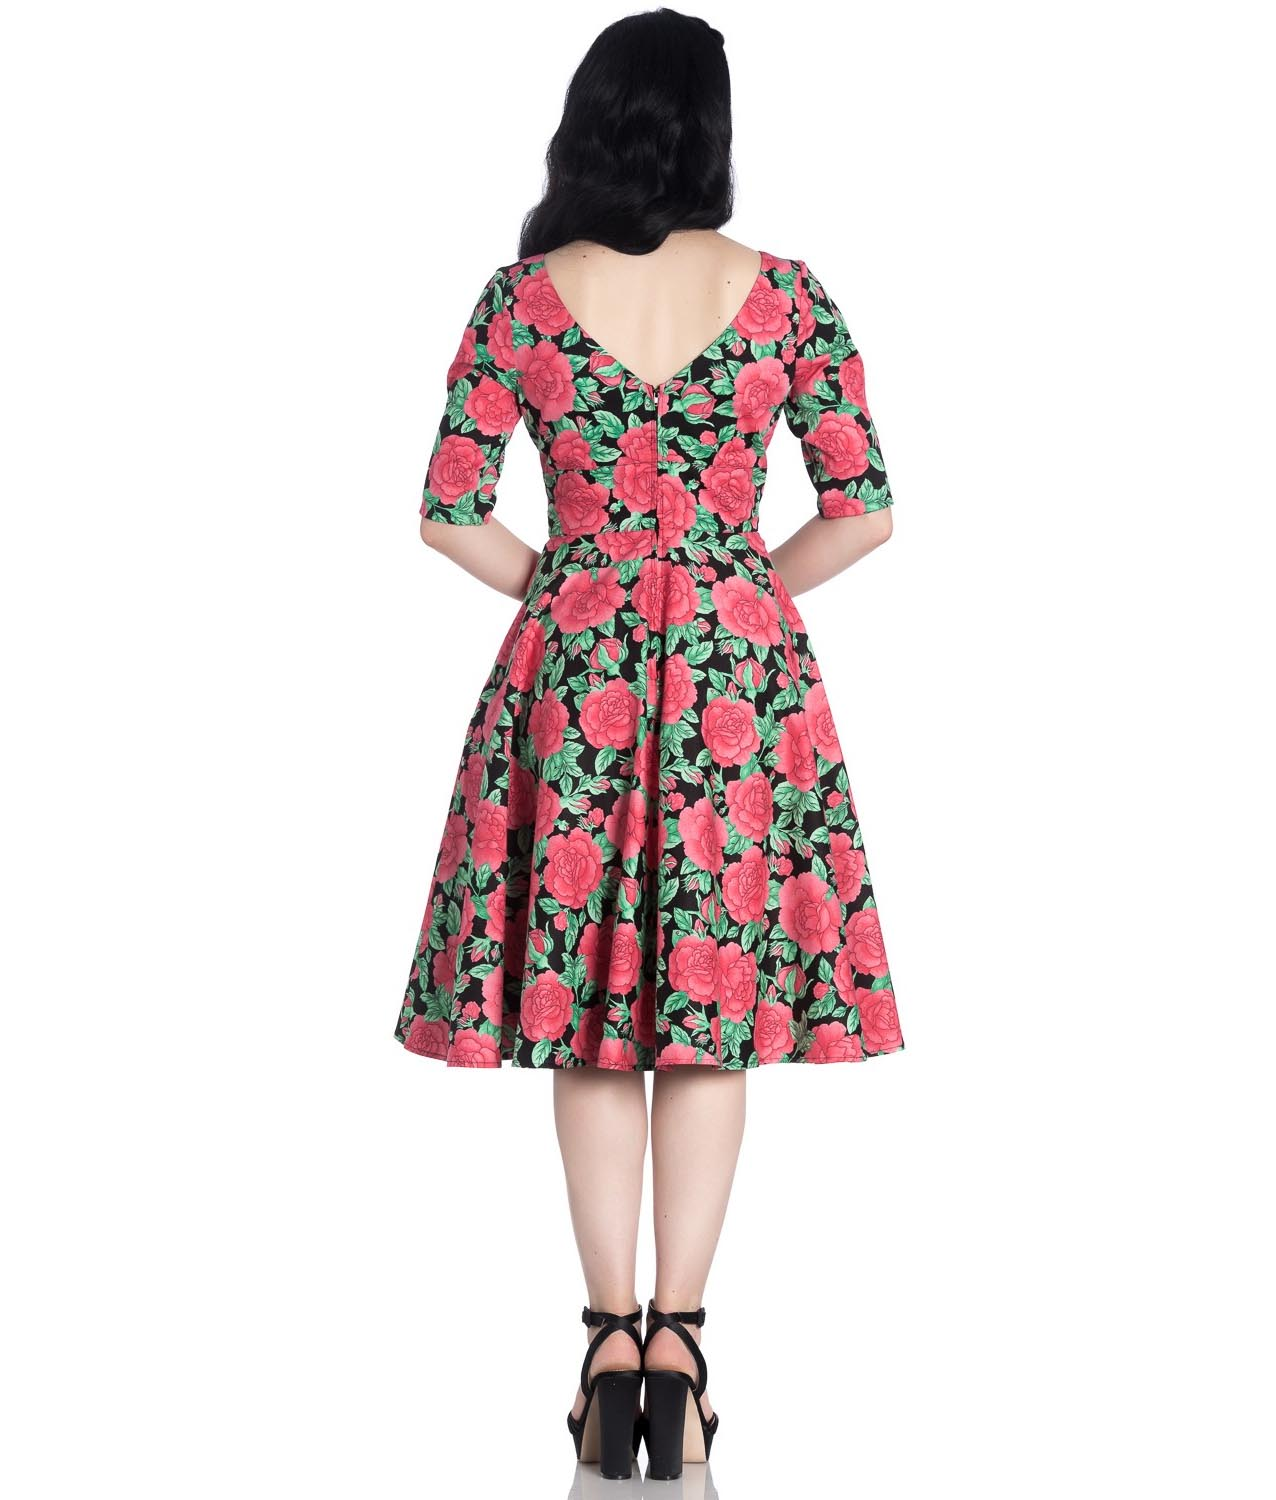 Hell-Bunny-40s-50s-Black-Pin-Up-Vintage-Dress-DARCY-Pink-Roses-All-Sizes thumbnail 9